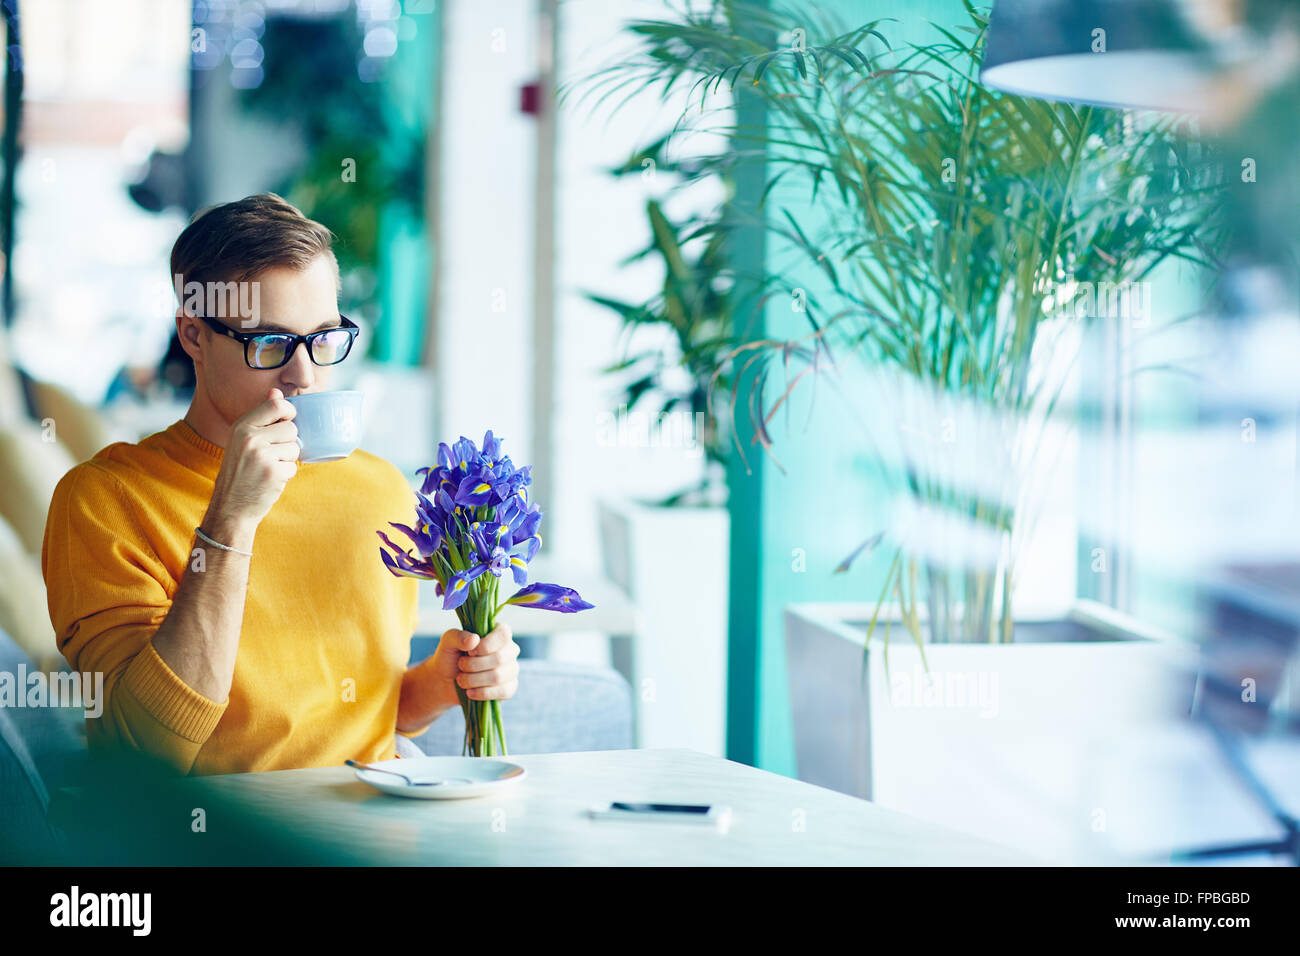 Young man with flowers drinking coffee at café - Stock Image